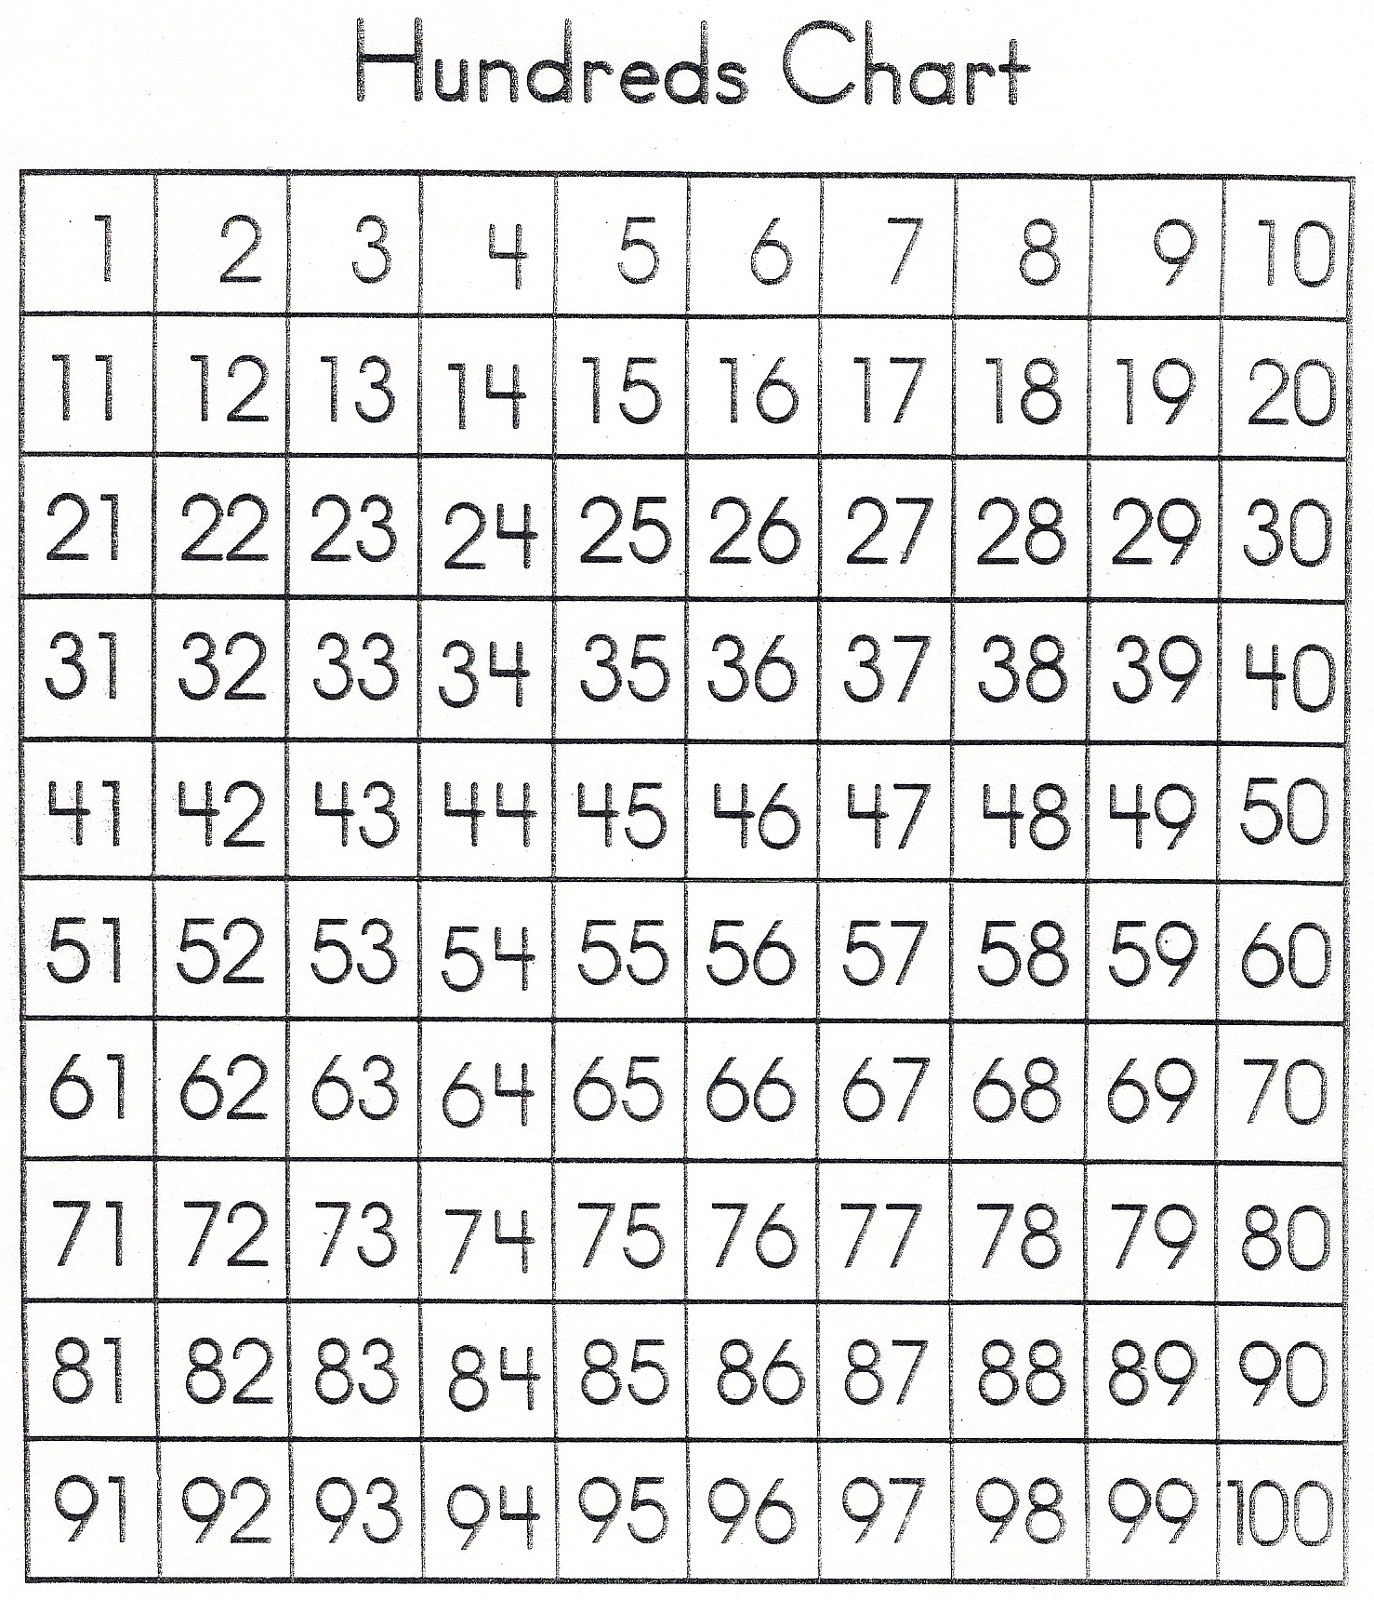 Number Sheet 1-100 To Print | Math Worksheets For Kids | 100 Number - Free Printable Number Worksheets 1 100